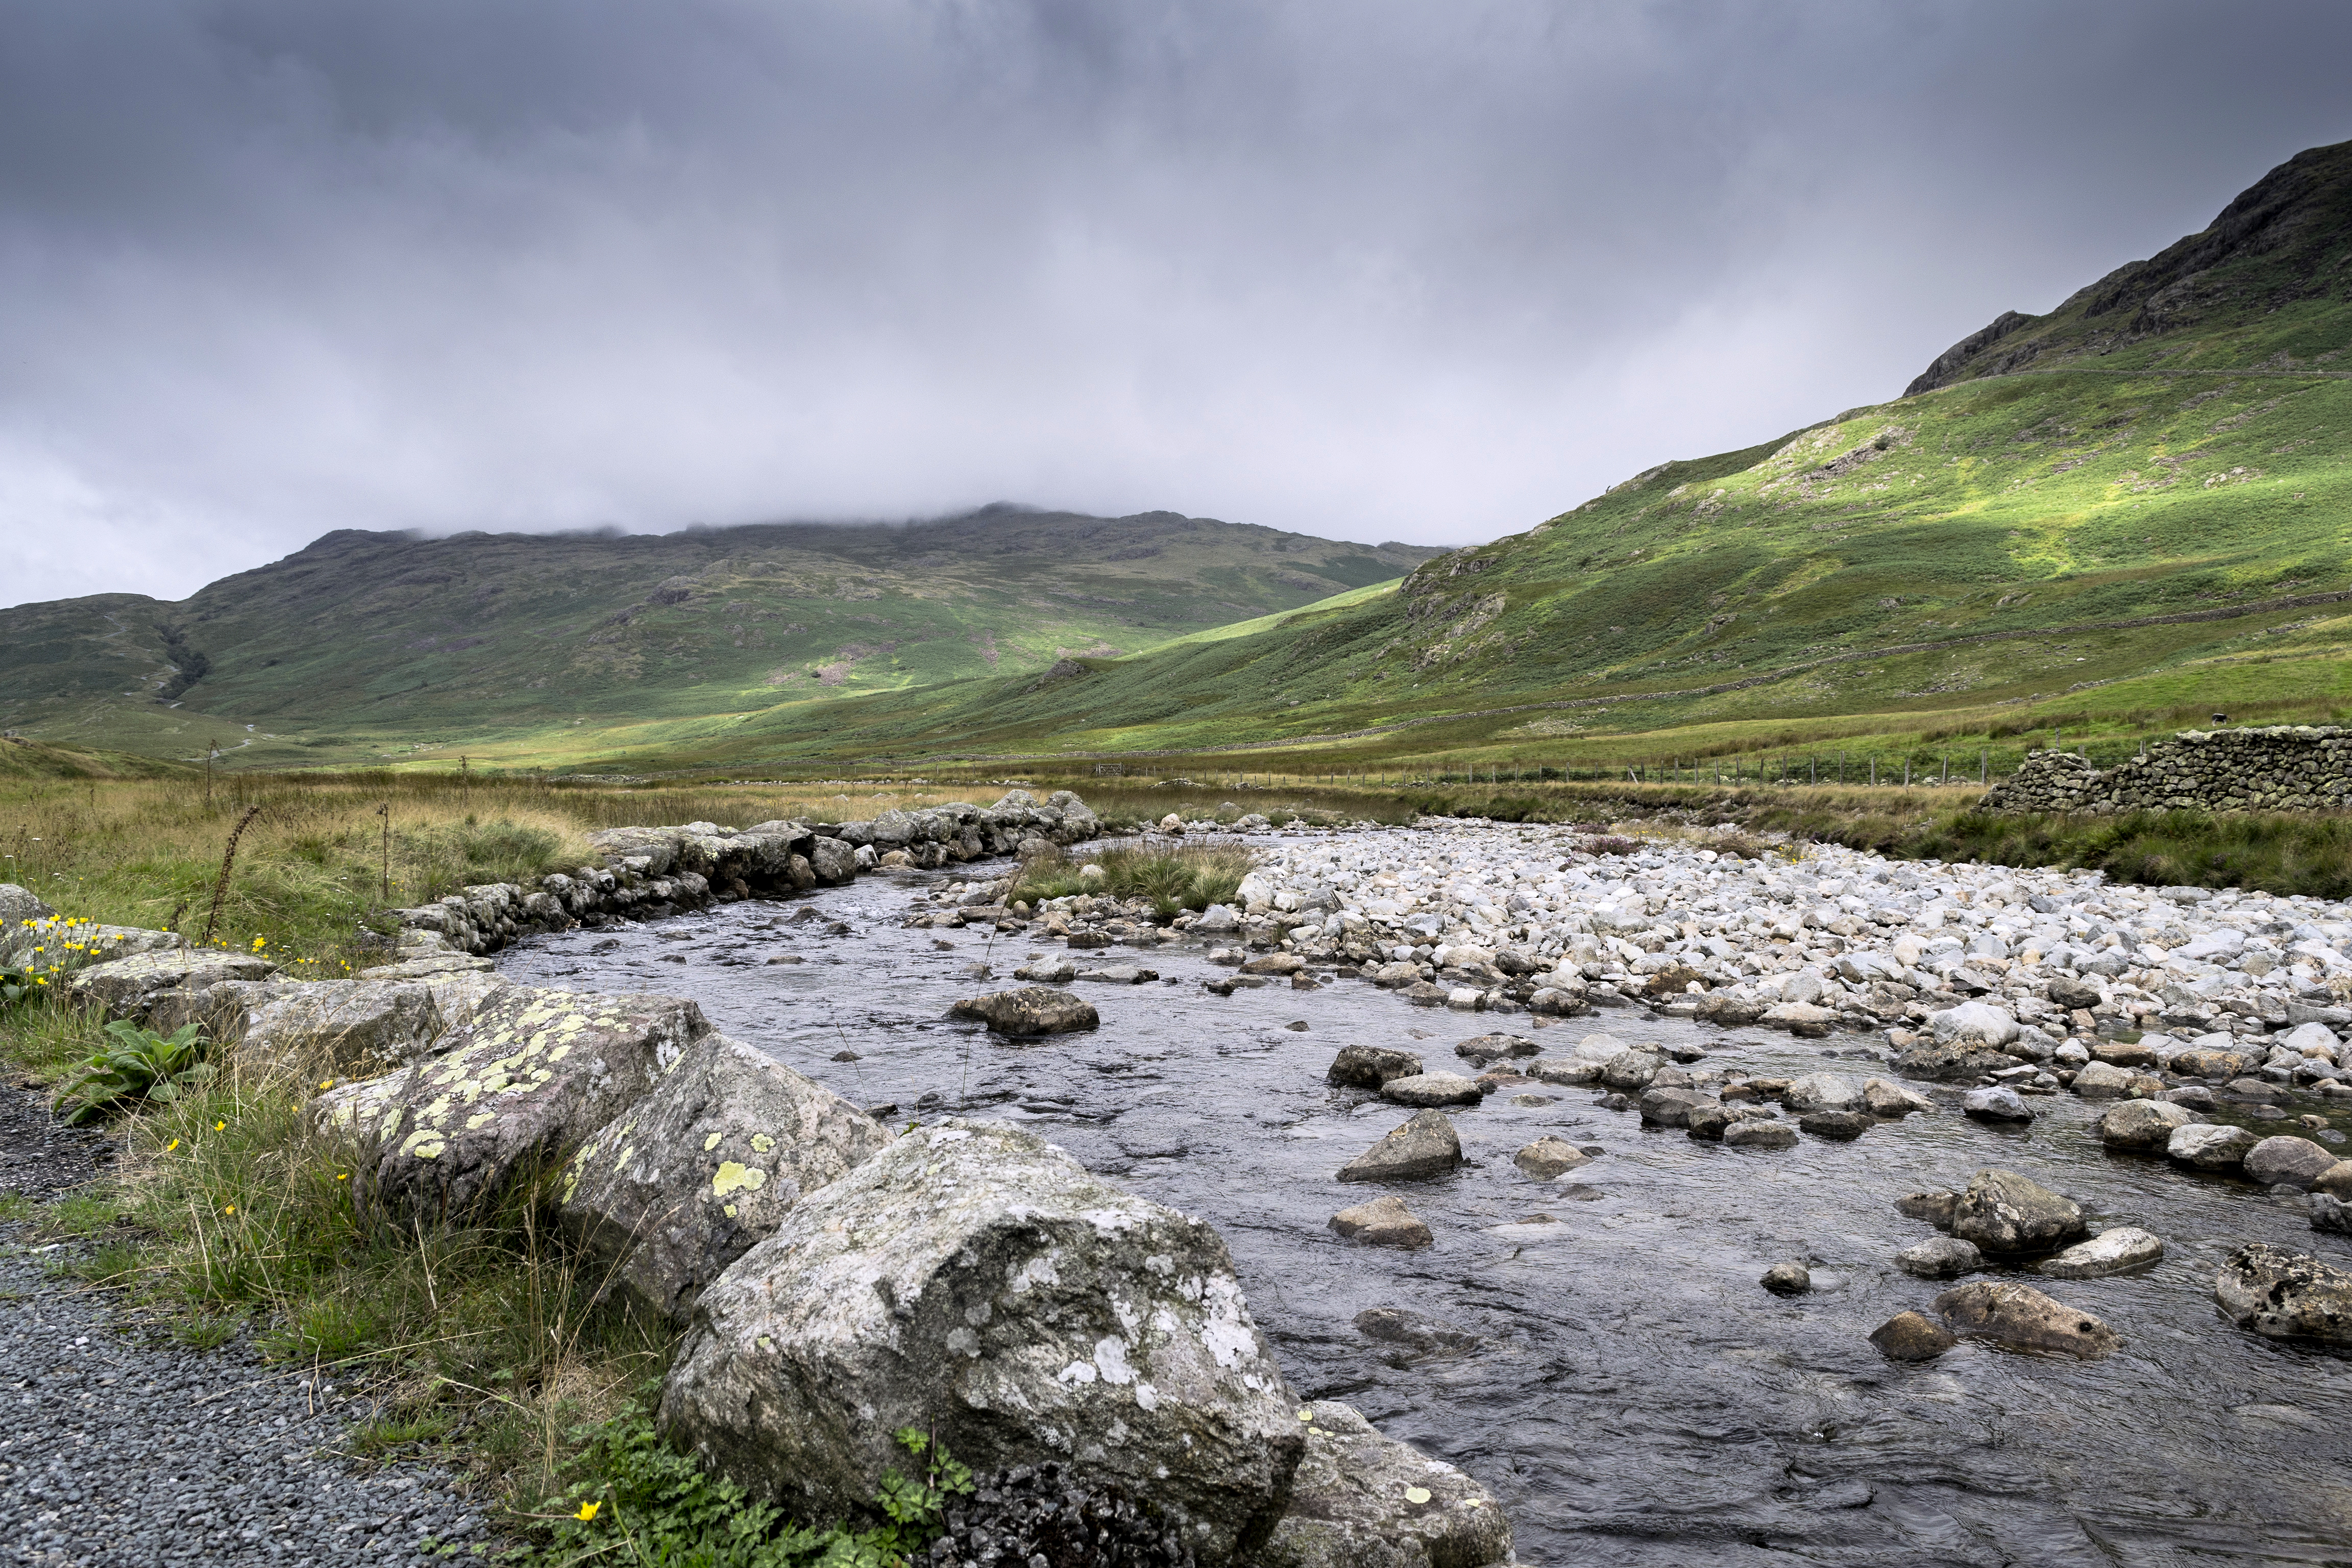 The-High-Adventure-Duddon-Valley-(1).JPG